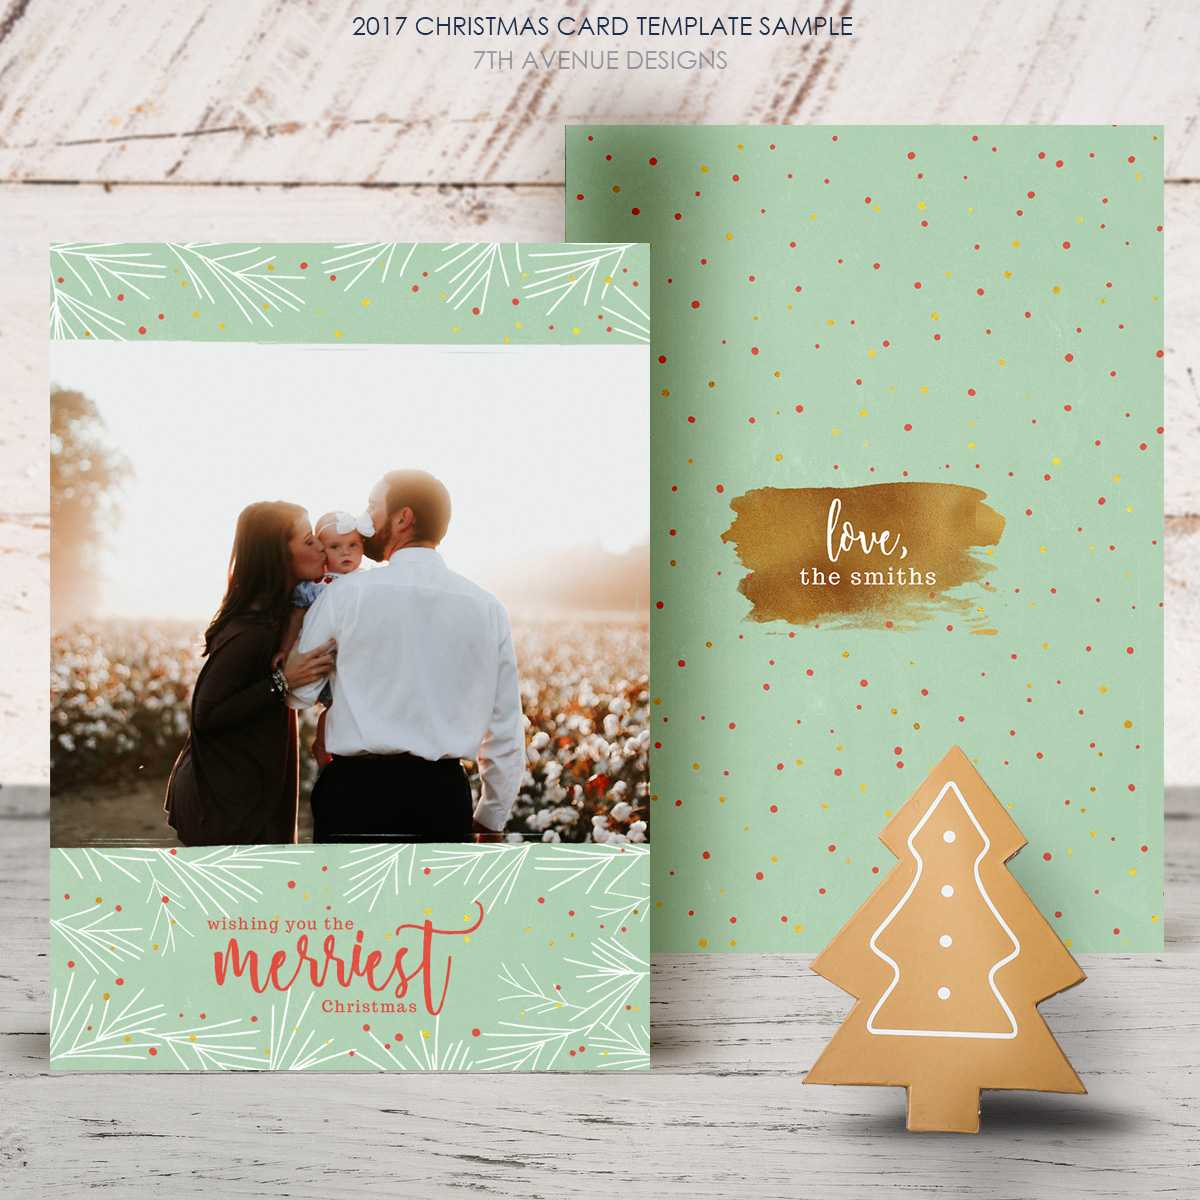 Free Christmas Card 2017 [Freecc2017] - It's Free Within Free Christmas Card Templates For Photographers